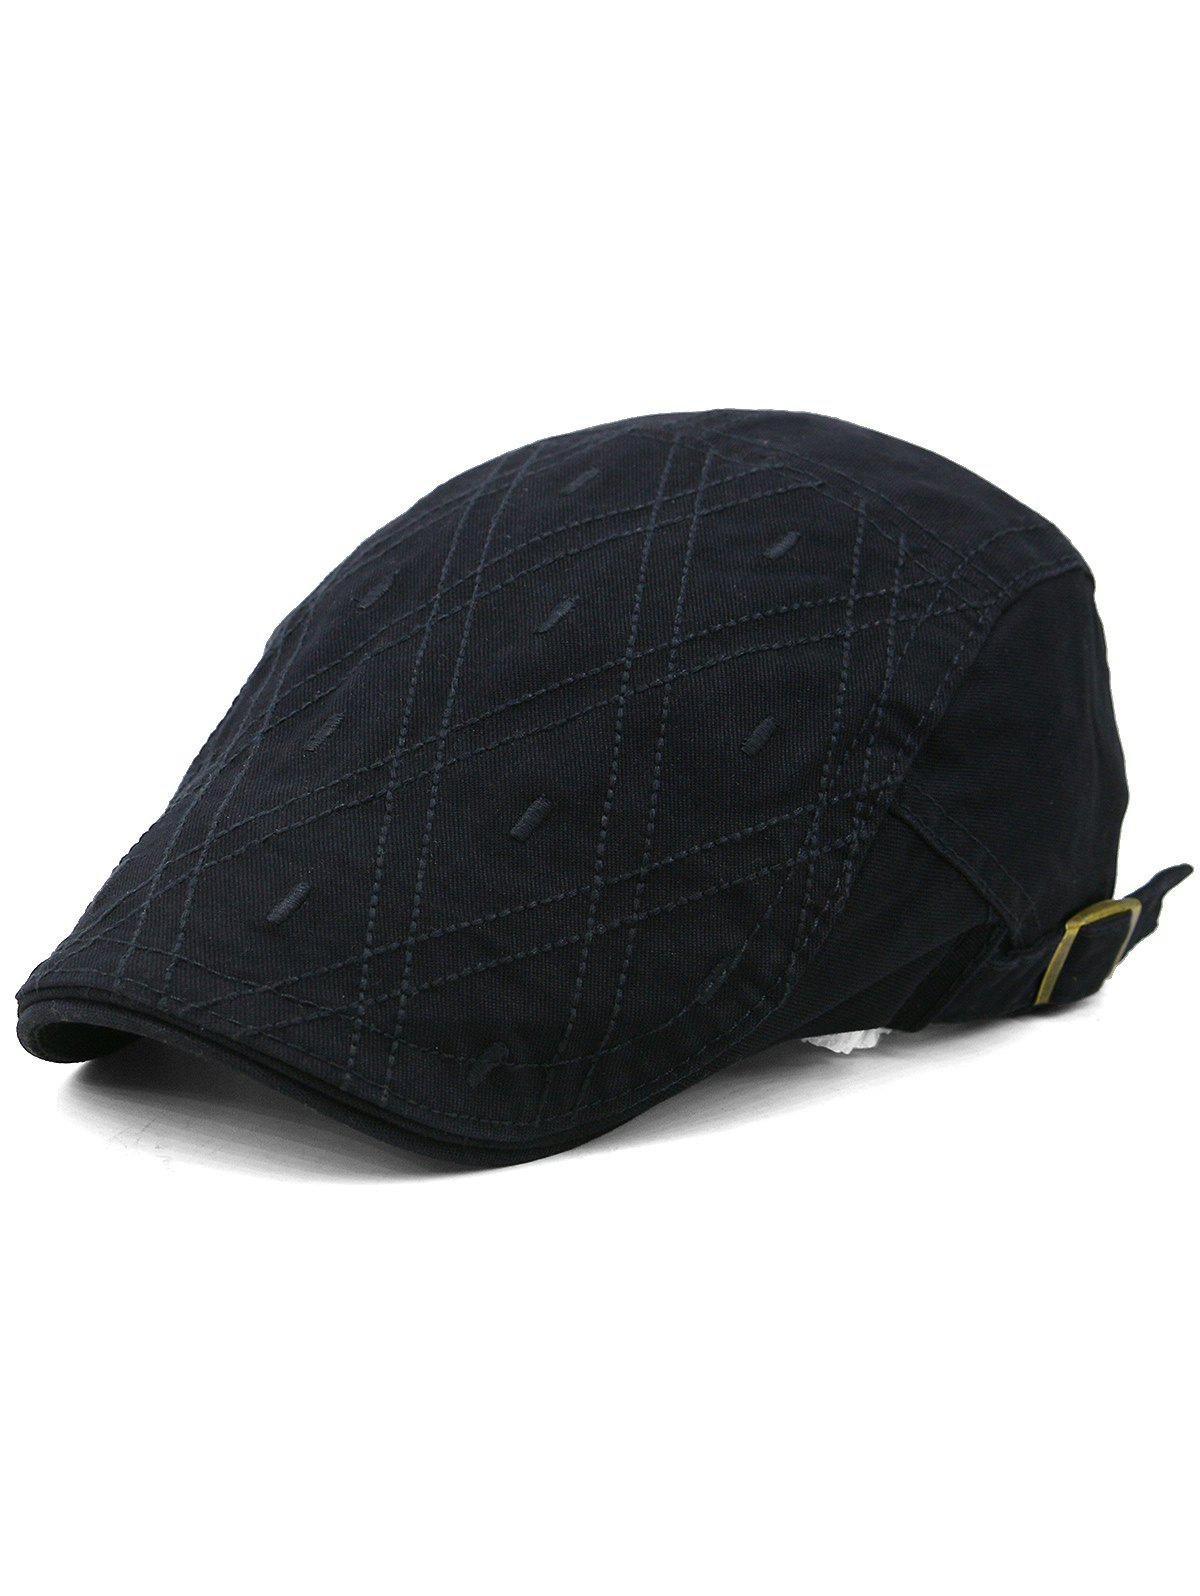 Buy Rhombus Embroidery Adjustable Jeff Hat